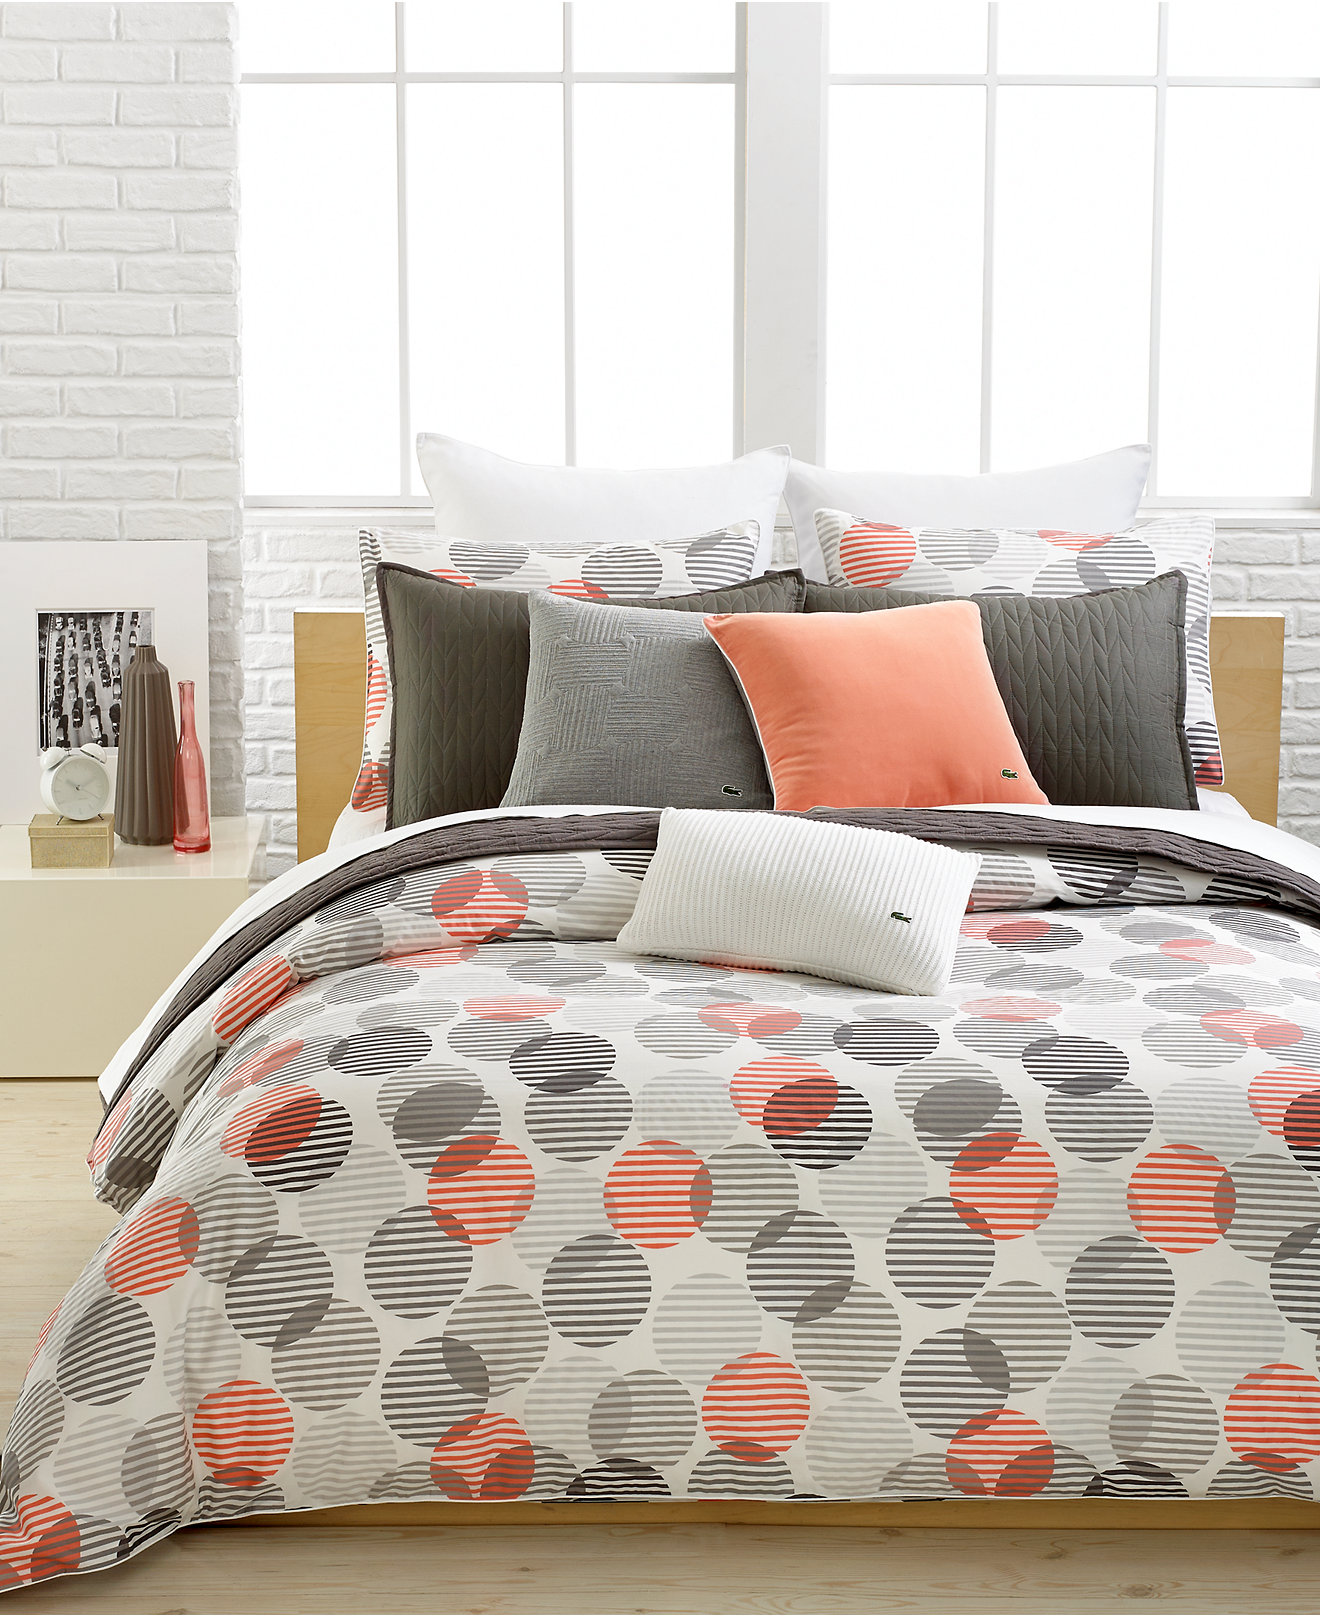 Bedding sets for women - Lacoste Odaiba Bedding Collection 100 Cotton Bedding Collections Bed Bath Macy S